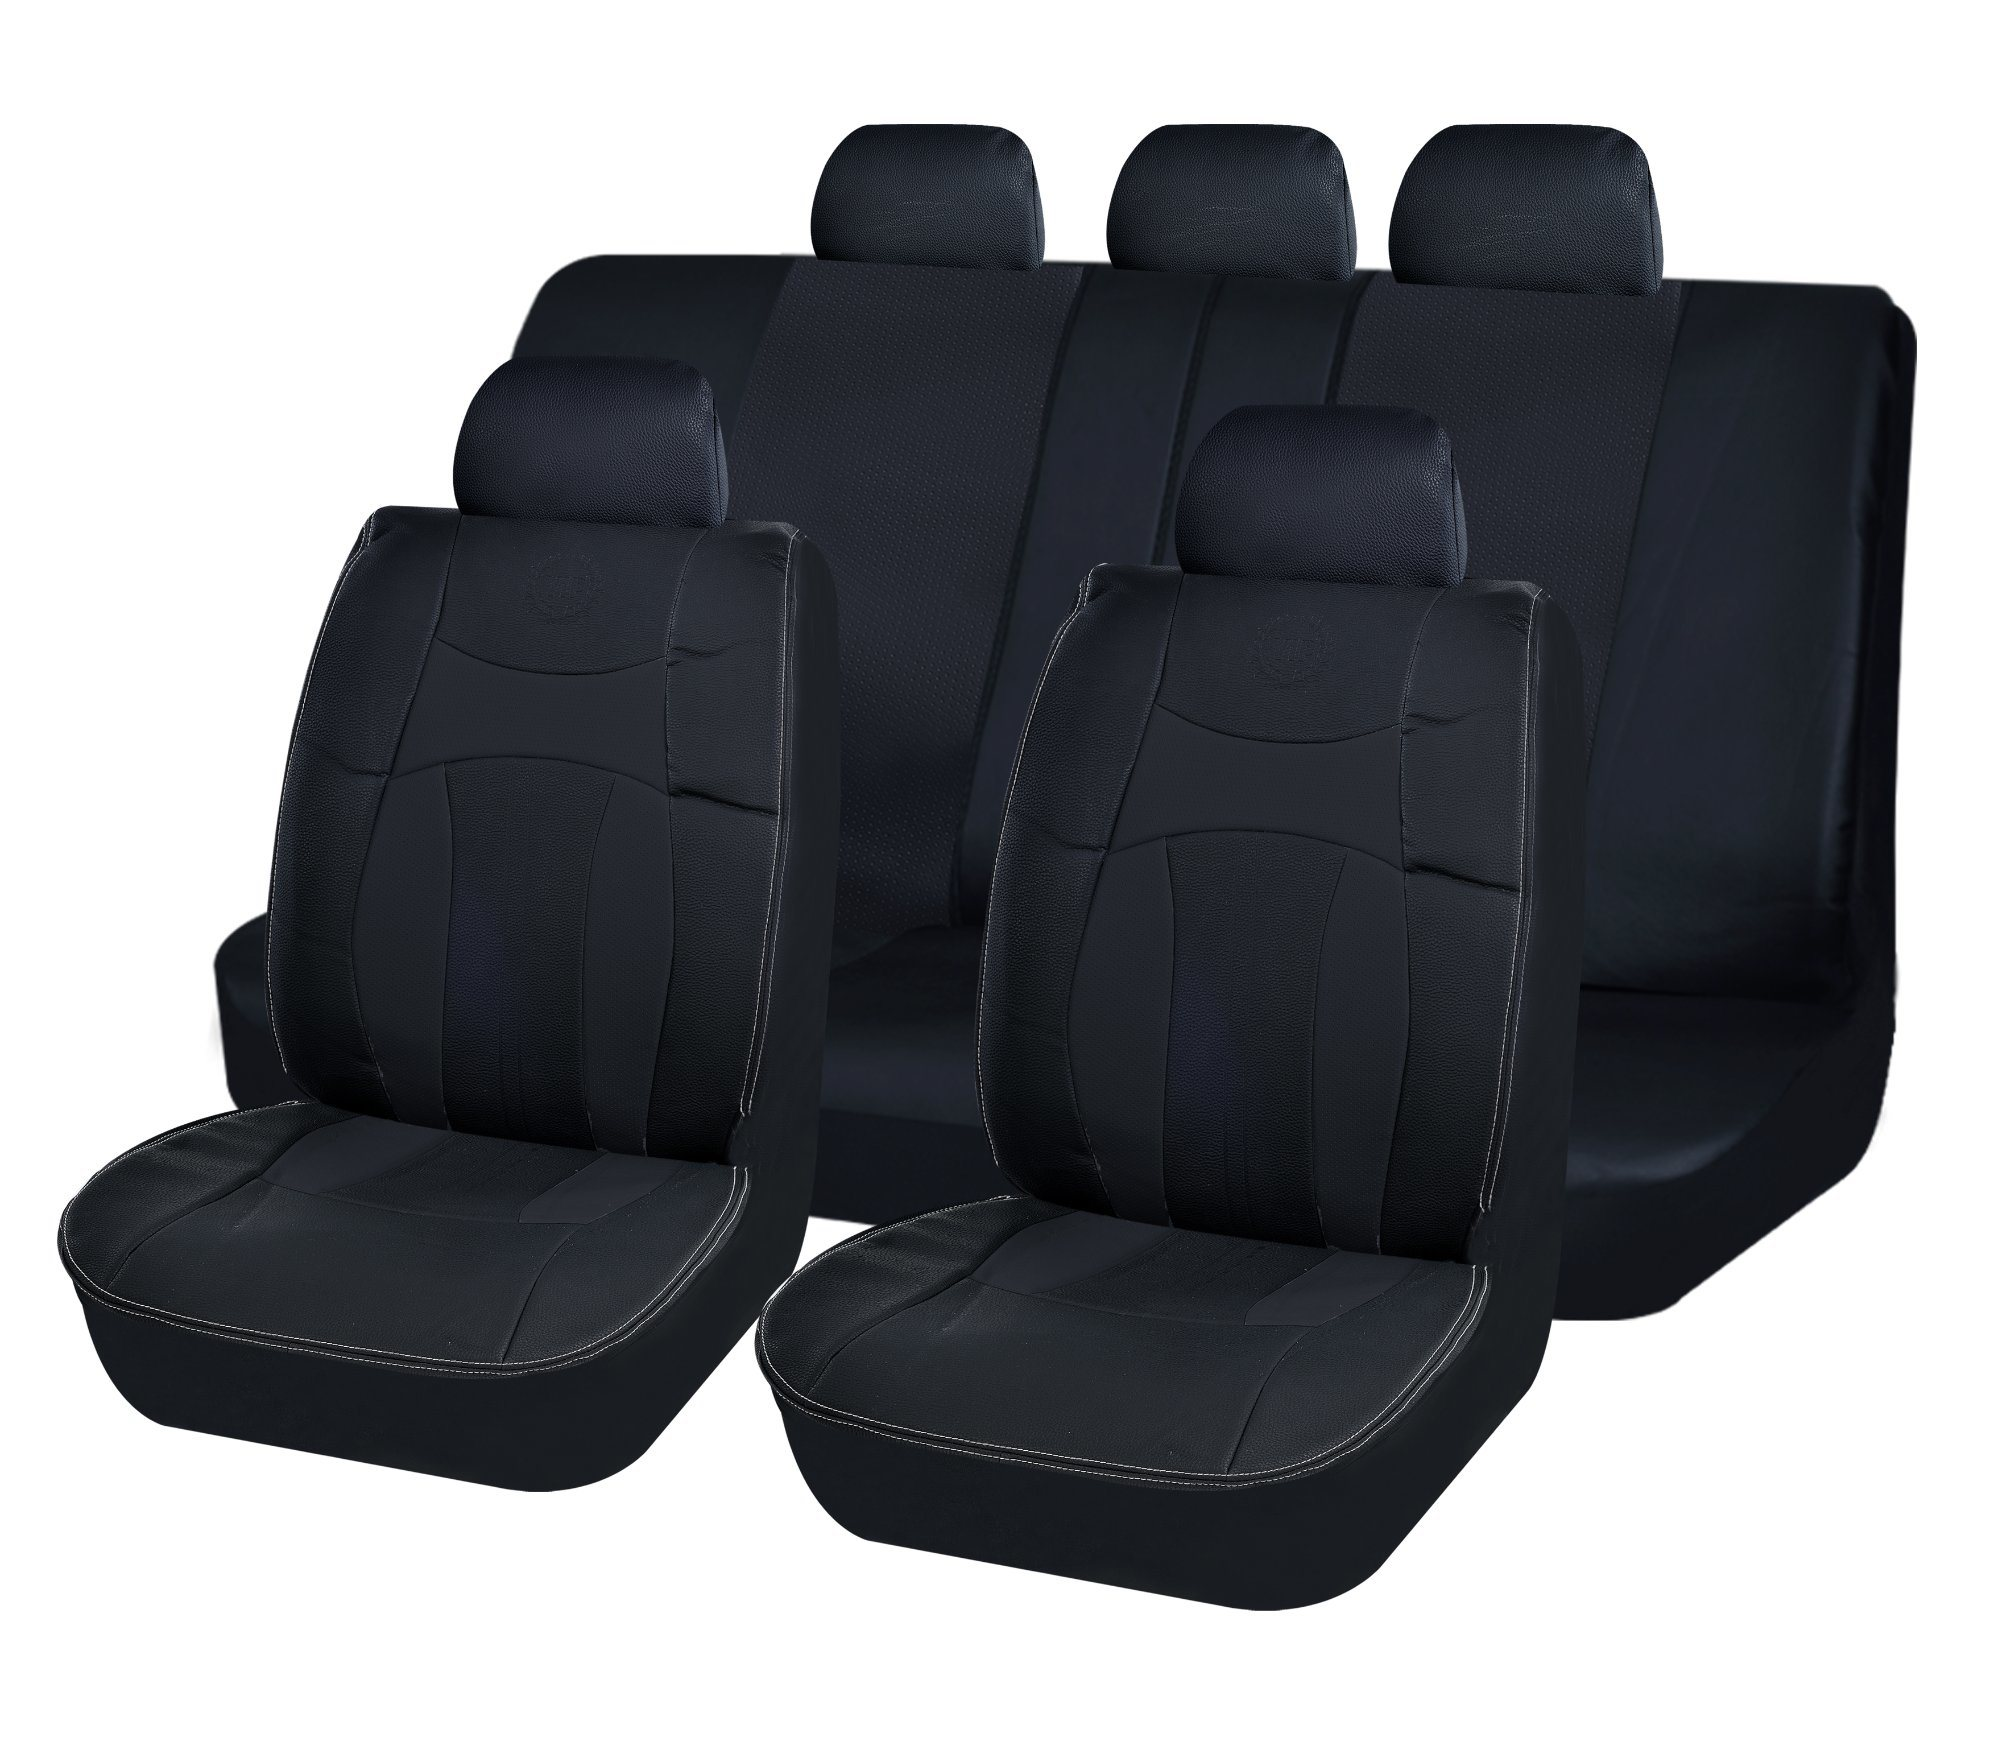 Universal High-Quality PU Leather /& Fabric Black Front Car Seat Covers Cushion